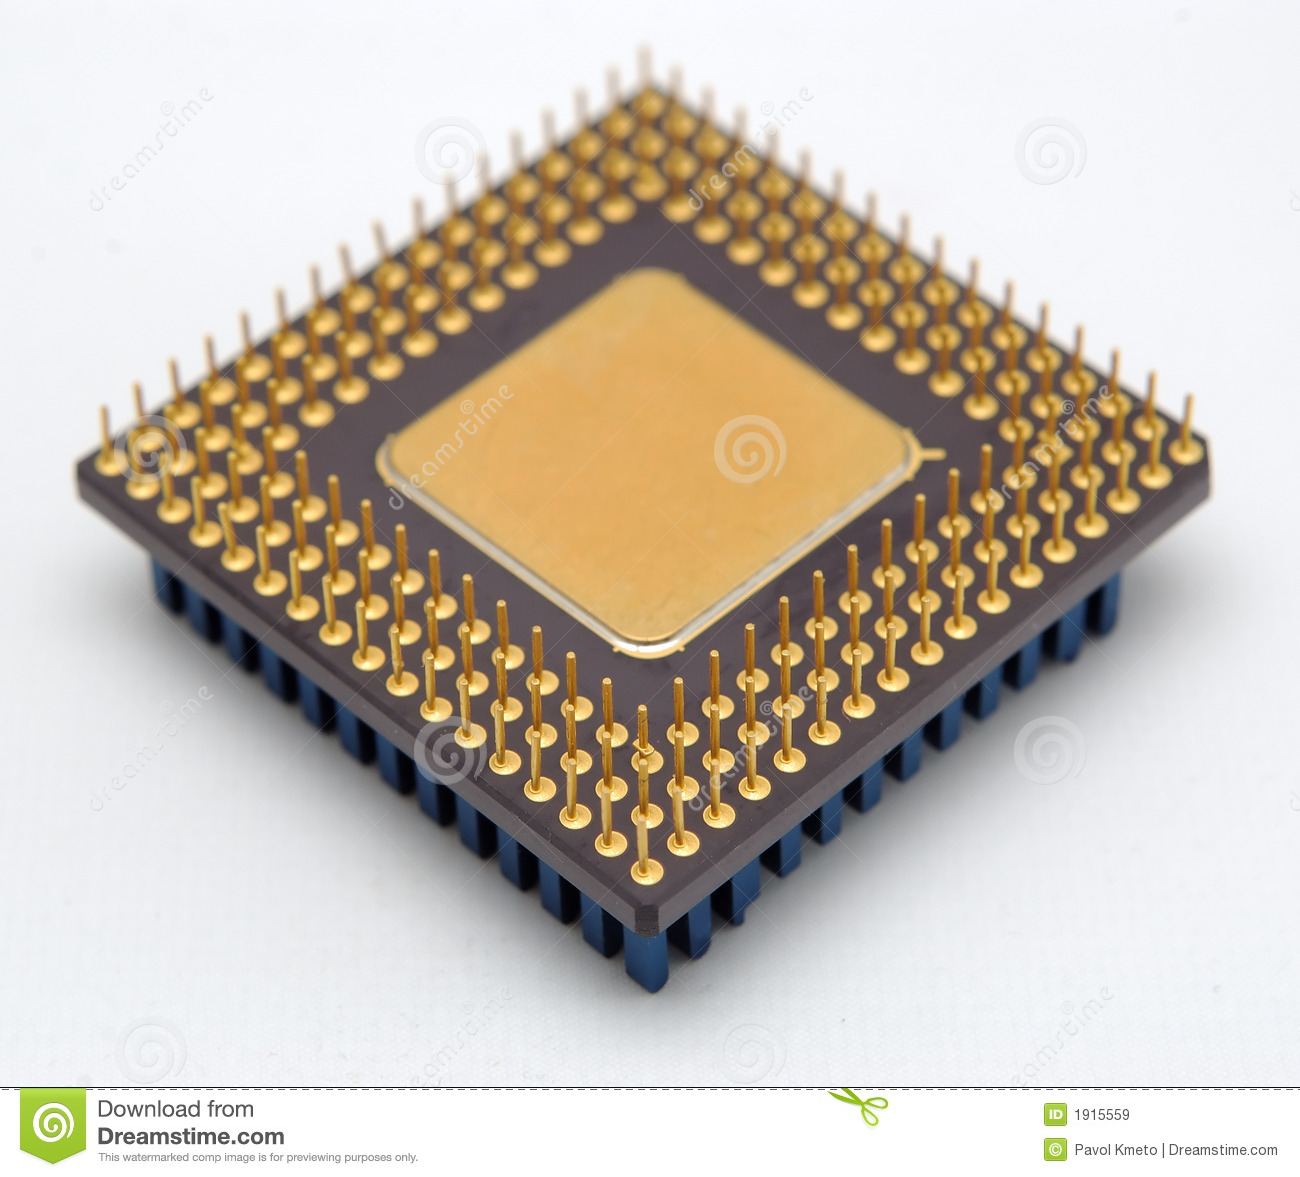 Microprocessor Royalty Free Stock Images - Image: 1915559